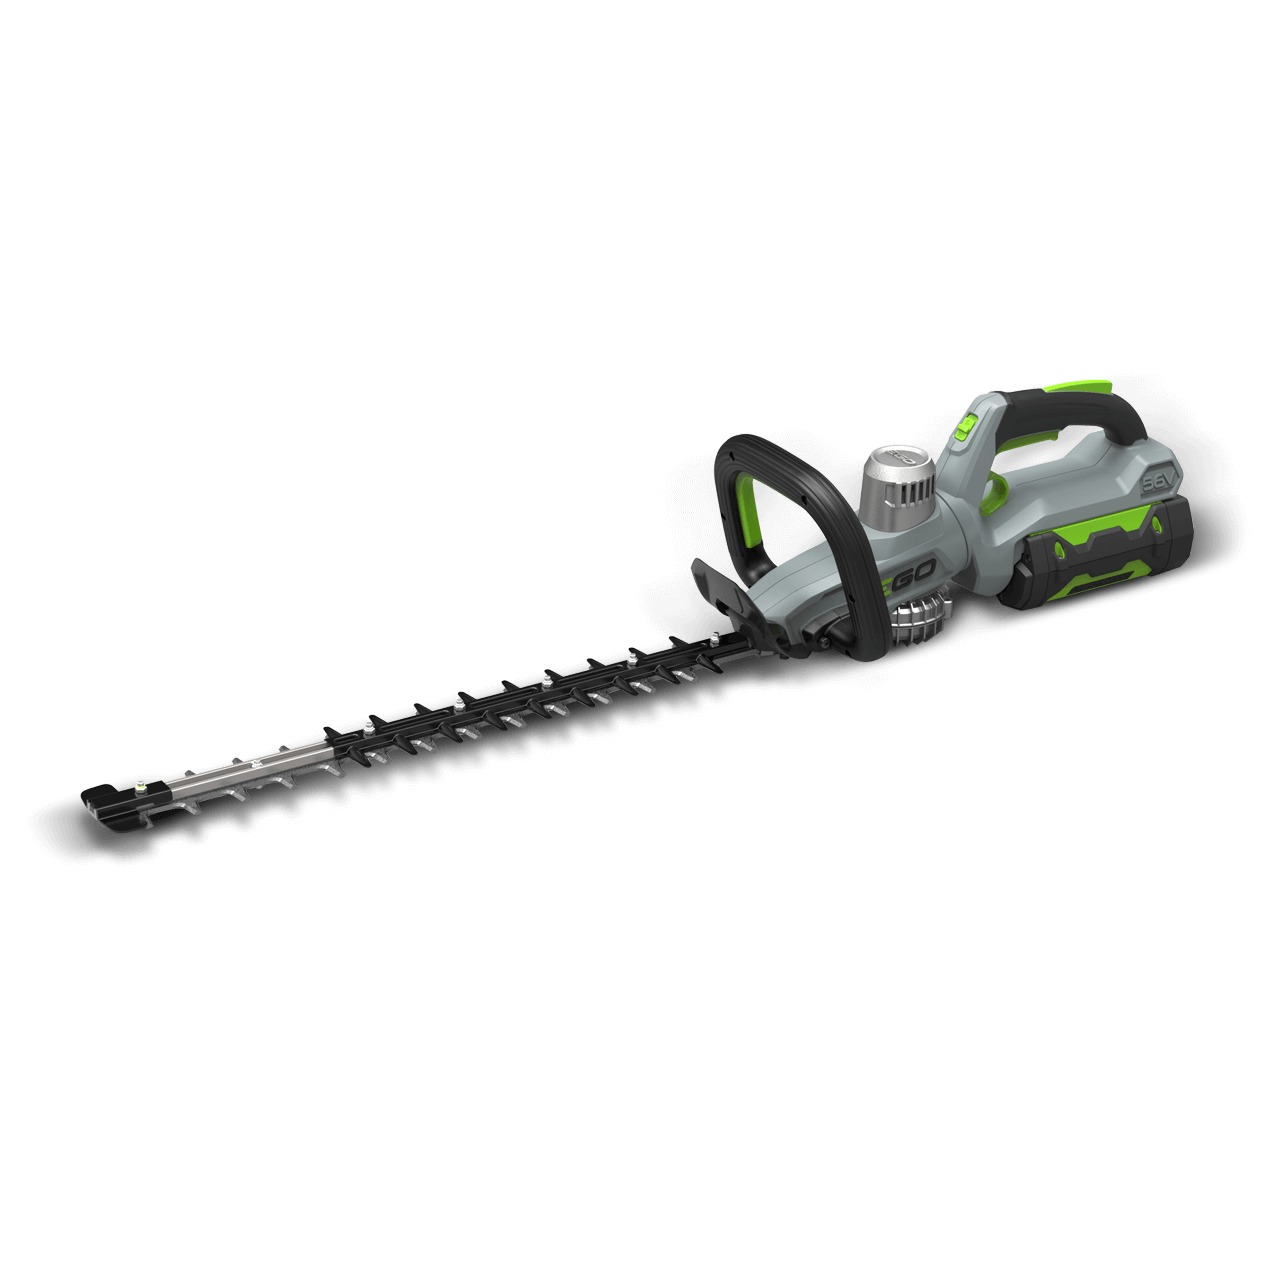 EGO HT5100E Cordless Hedge Trimmer (shell only)